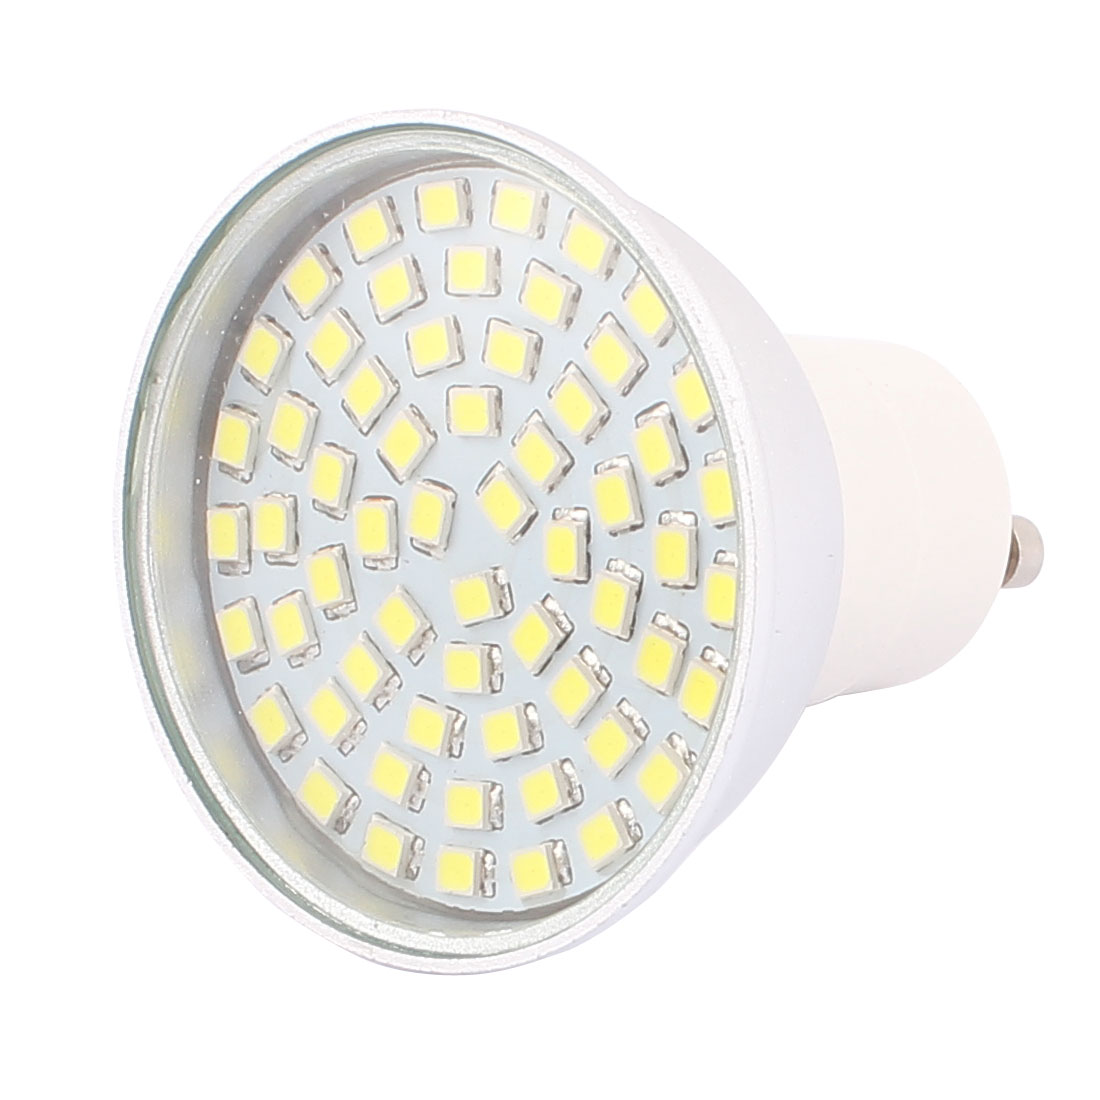 110V GU10 LED Light 6W 2835 SMD 60 LEDs Spotlight Down Lamp Energy Save Pure White